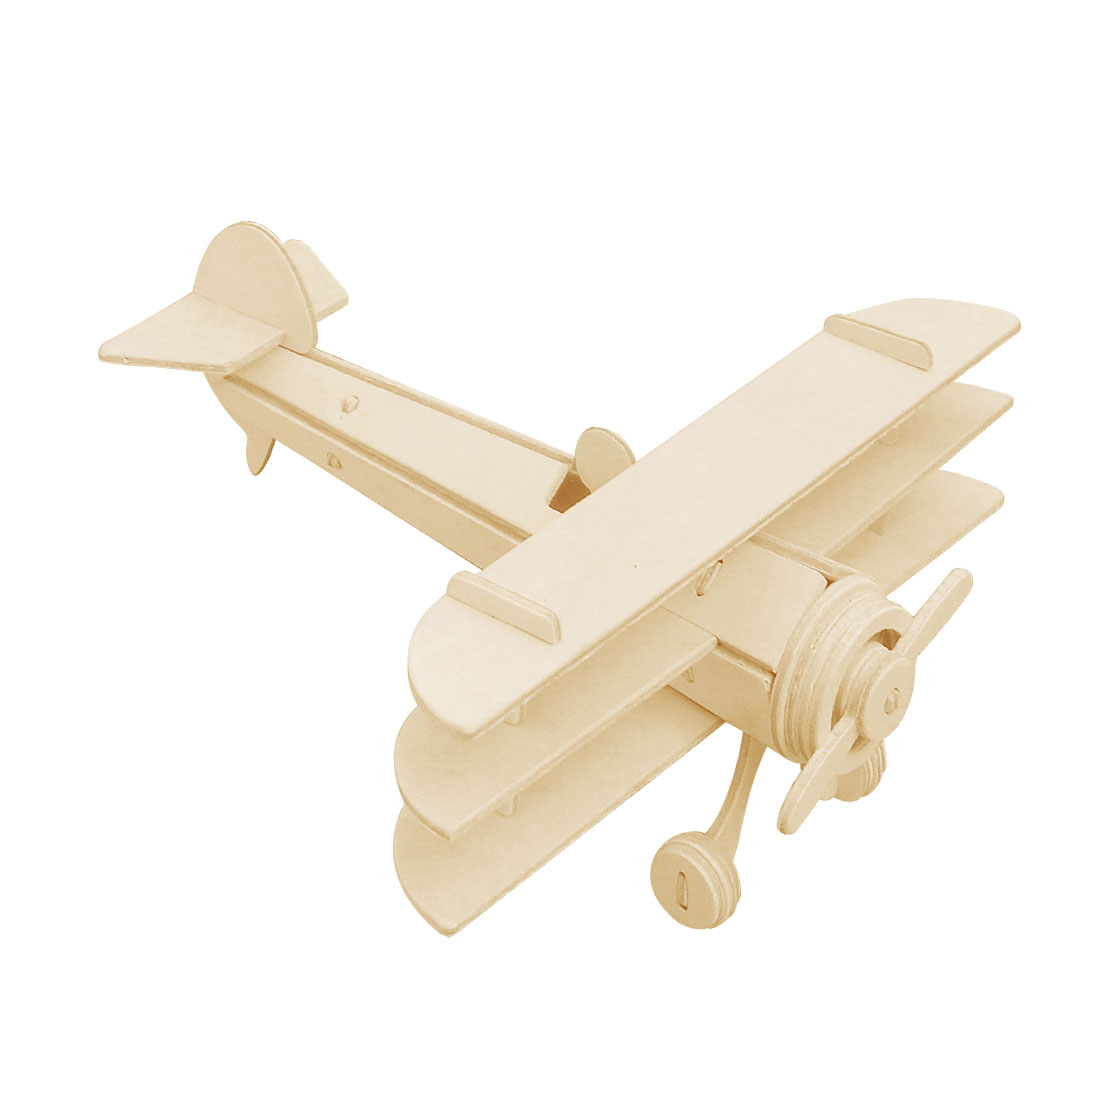 Child DIY Wooden Spowith Triplane Model Woodcraft Construction Kit Puzzle Toy